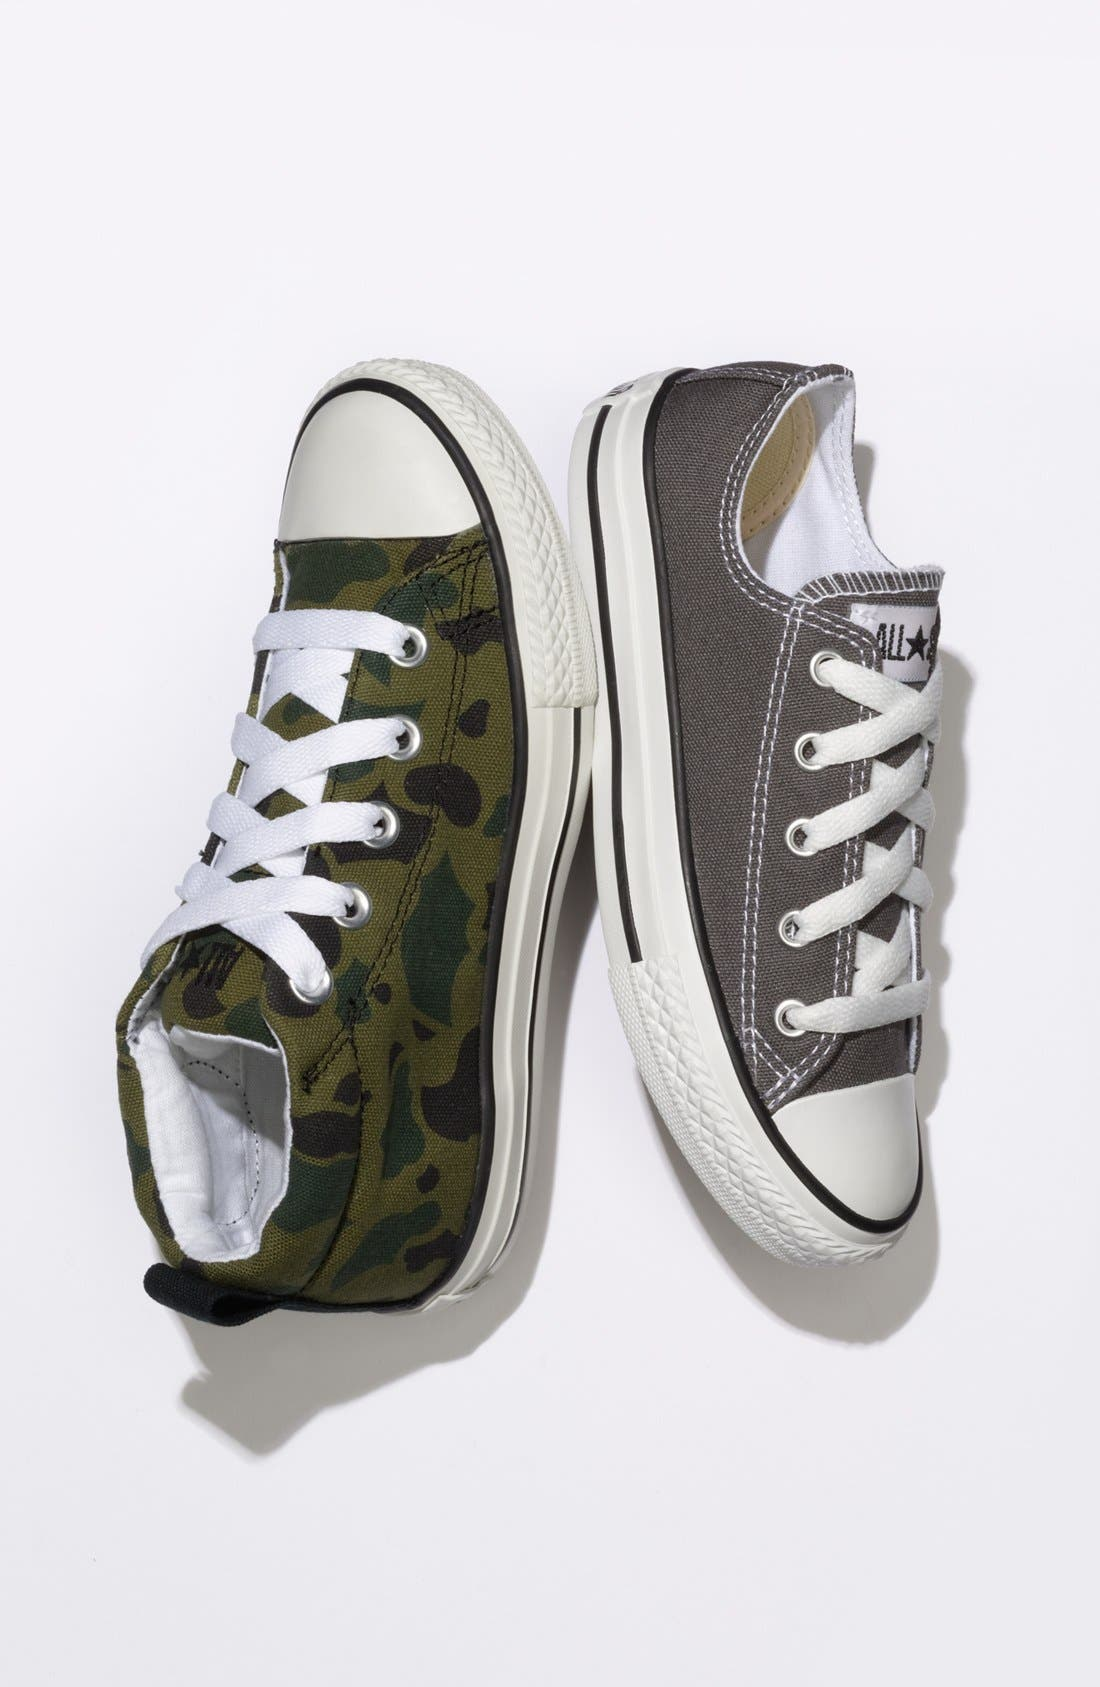 Chuck Taylor<sup>®</sup> 'Street Mid Cab' Slip-On Sneaker,                             Alternate thumbnail 2, color,                             007